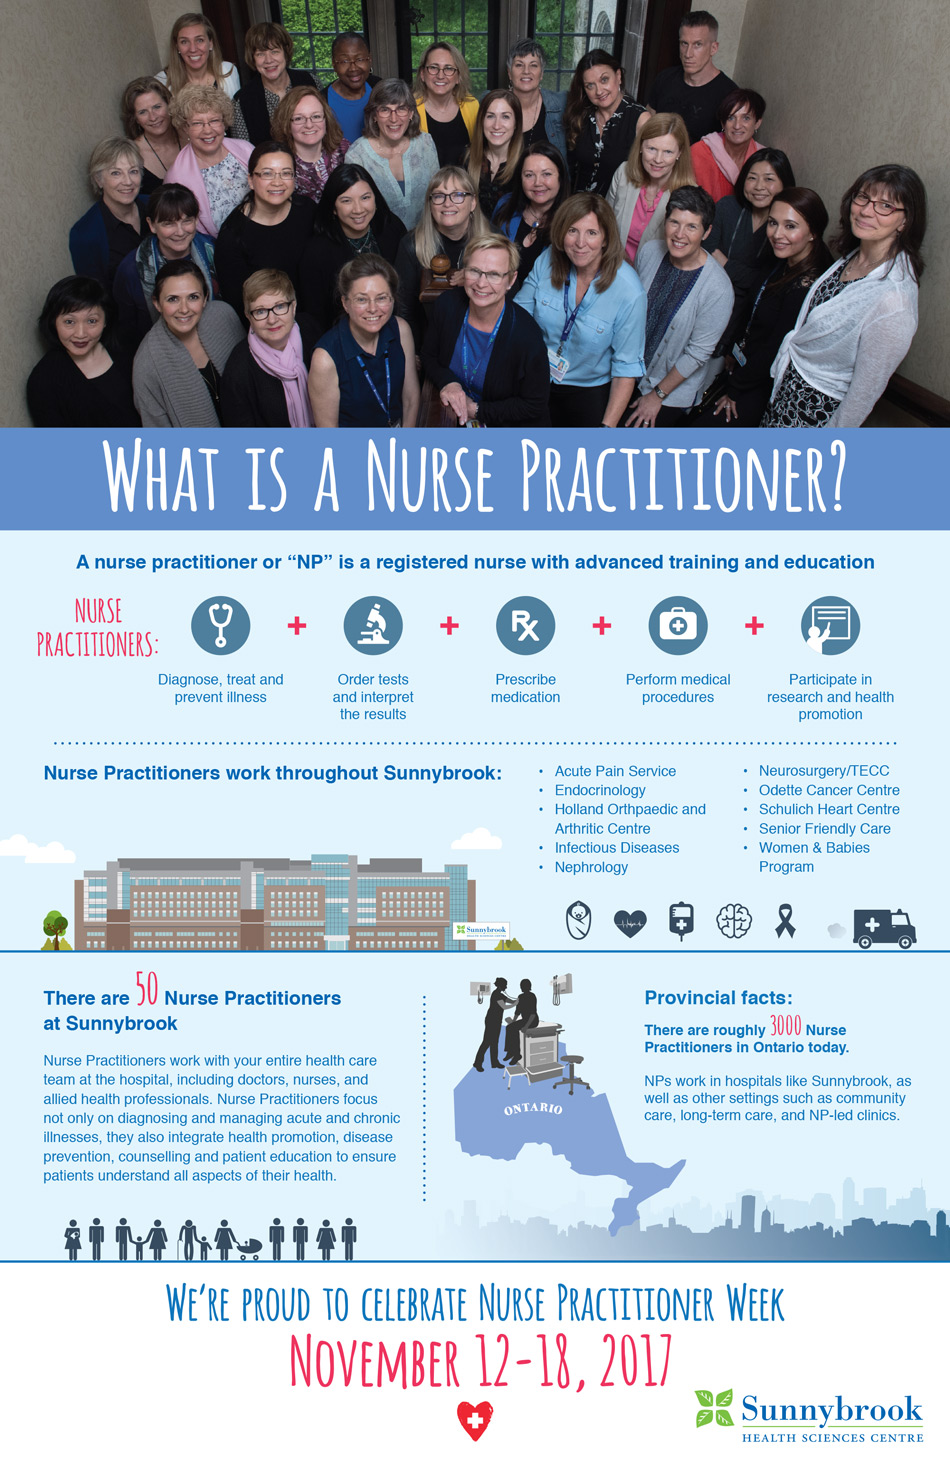 What is a Nurse Practitioner? Read the full text below